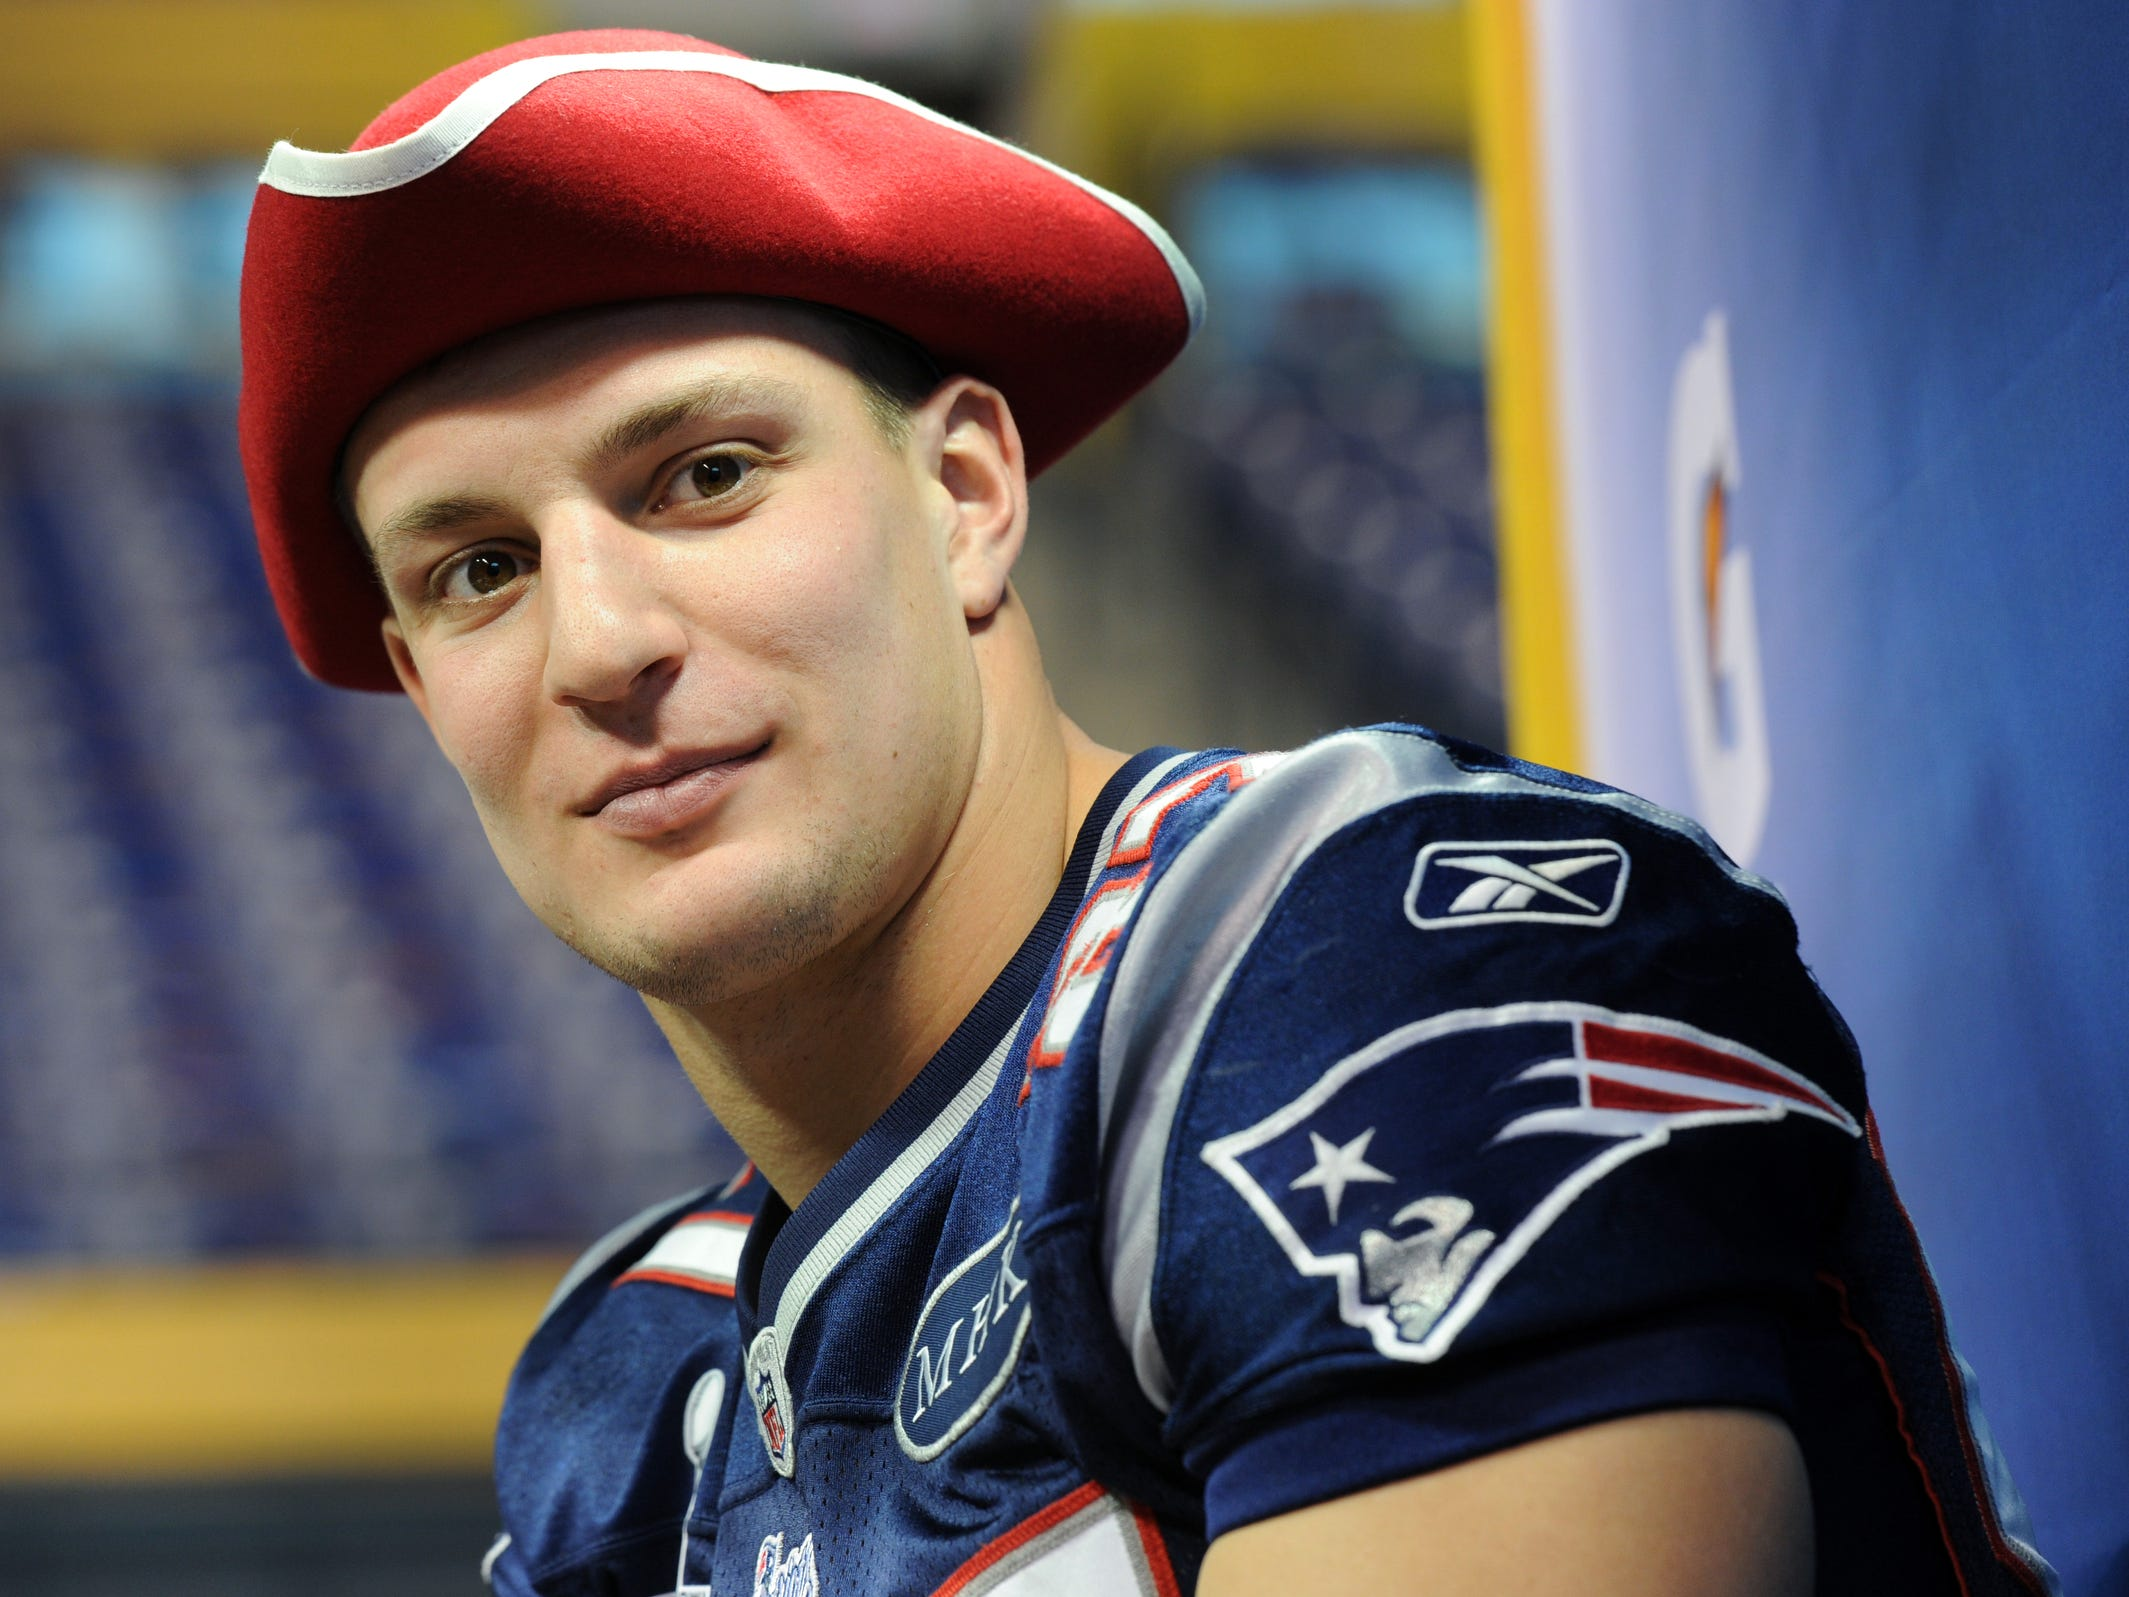 Jan. 31, 2012: Rob Gronkowski answers questions during Super Bowl XLVI Media Day at the Lucas Oil Stadium in Indianapolis.